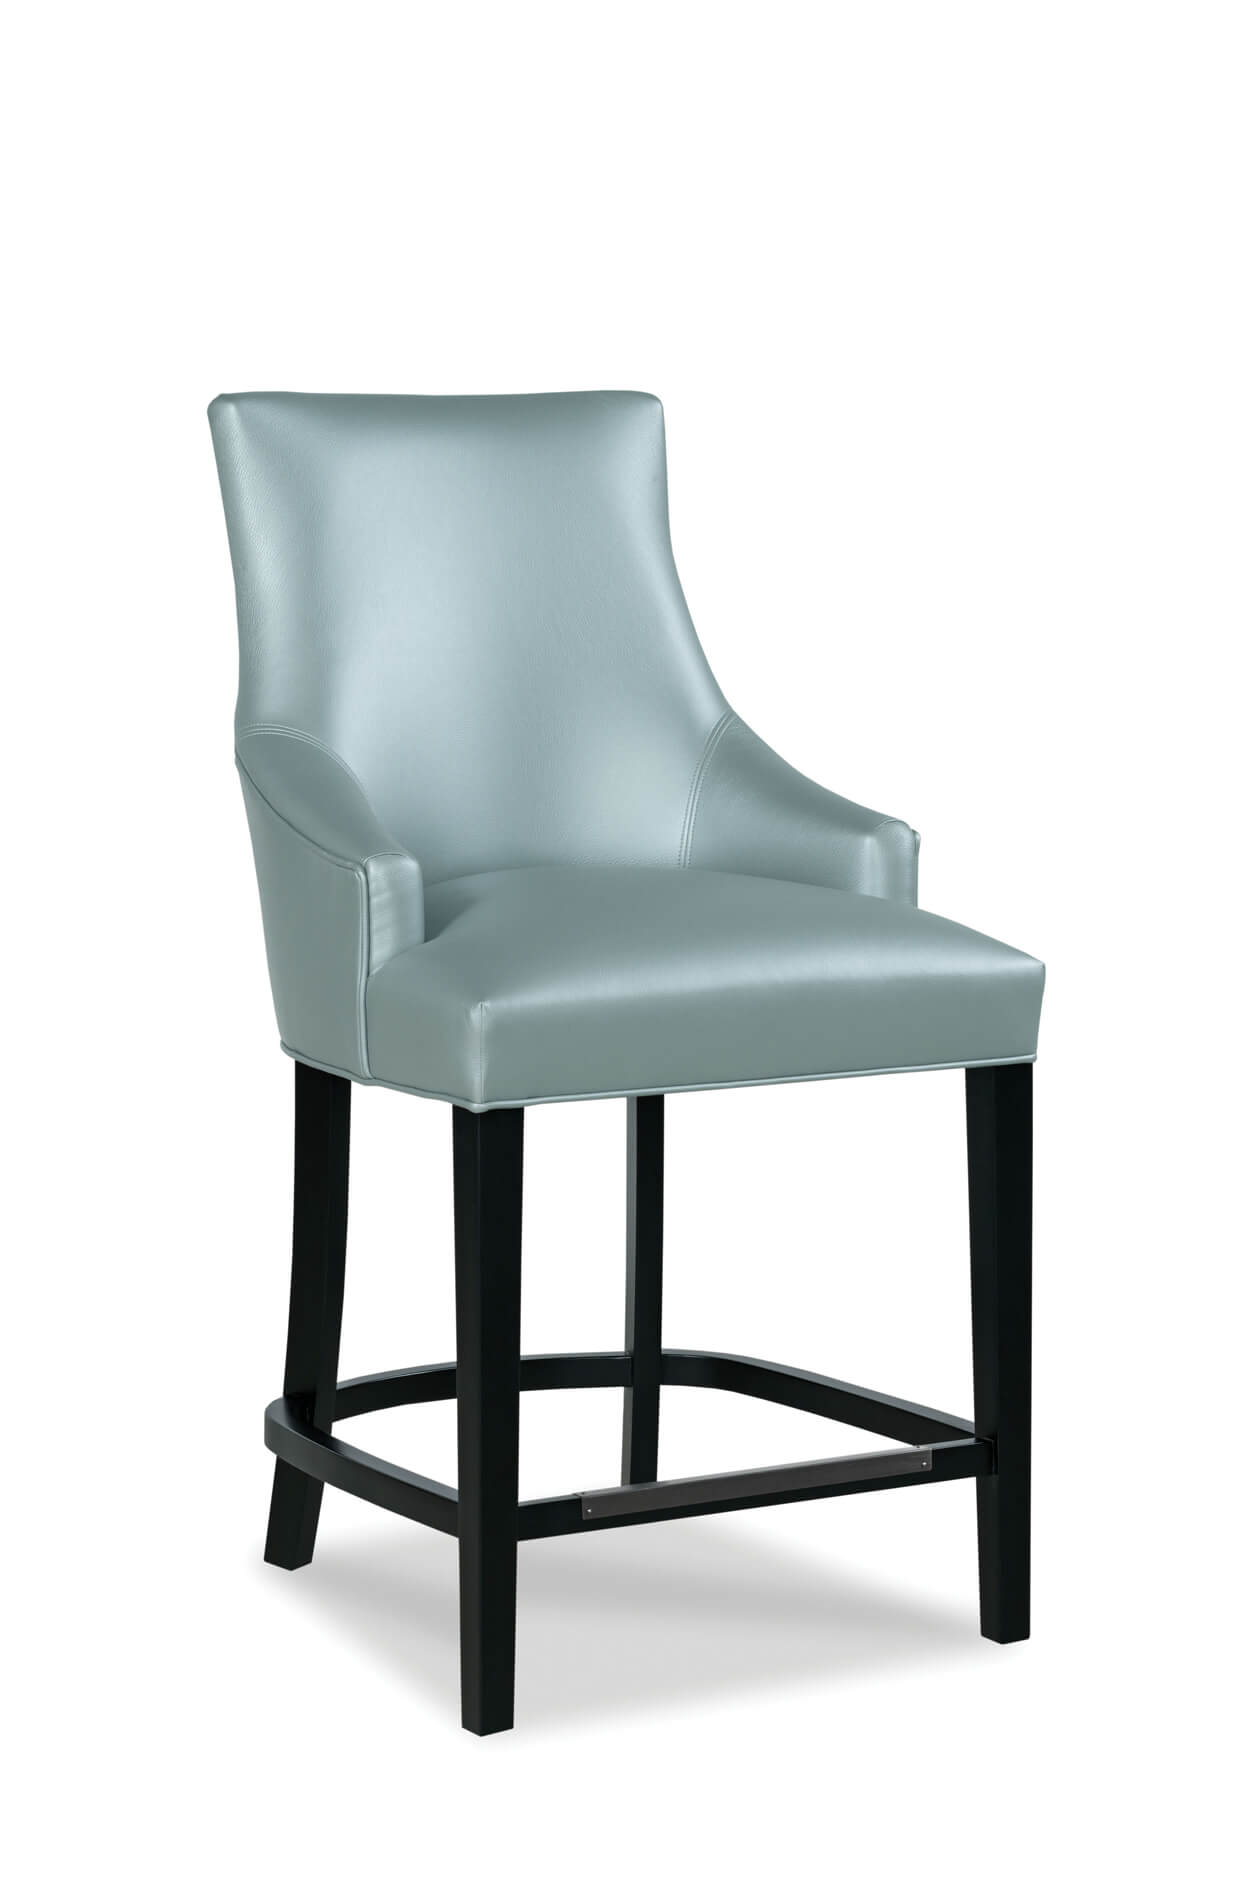 Ashton Wooden Counter Stool with Arms